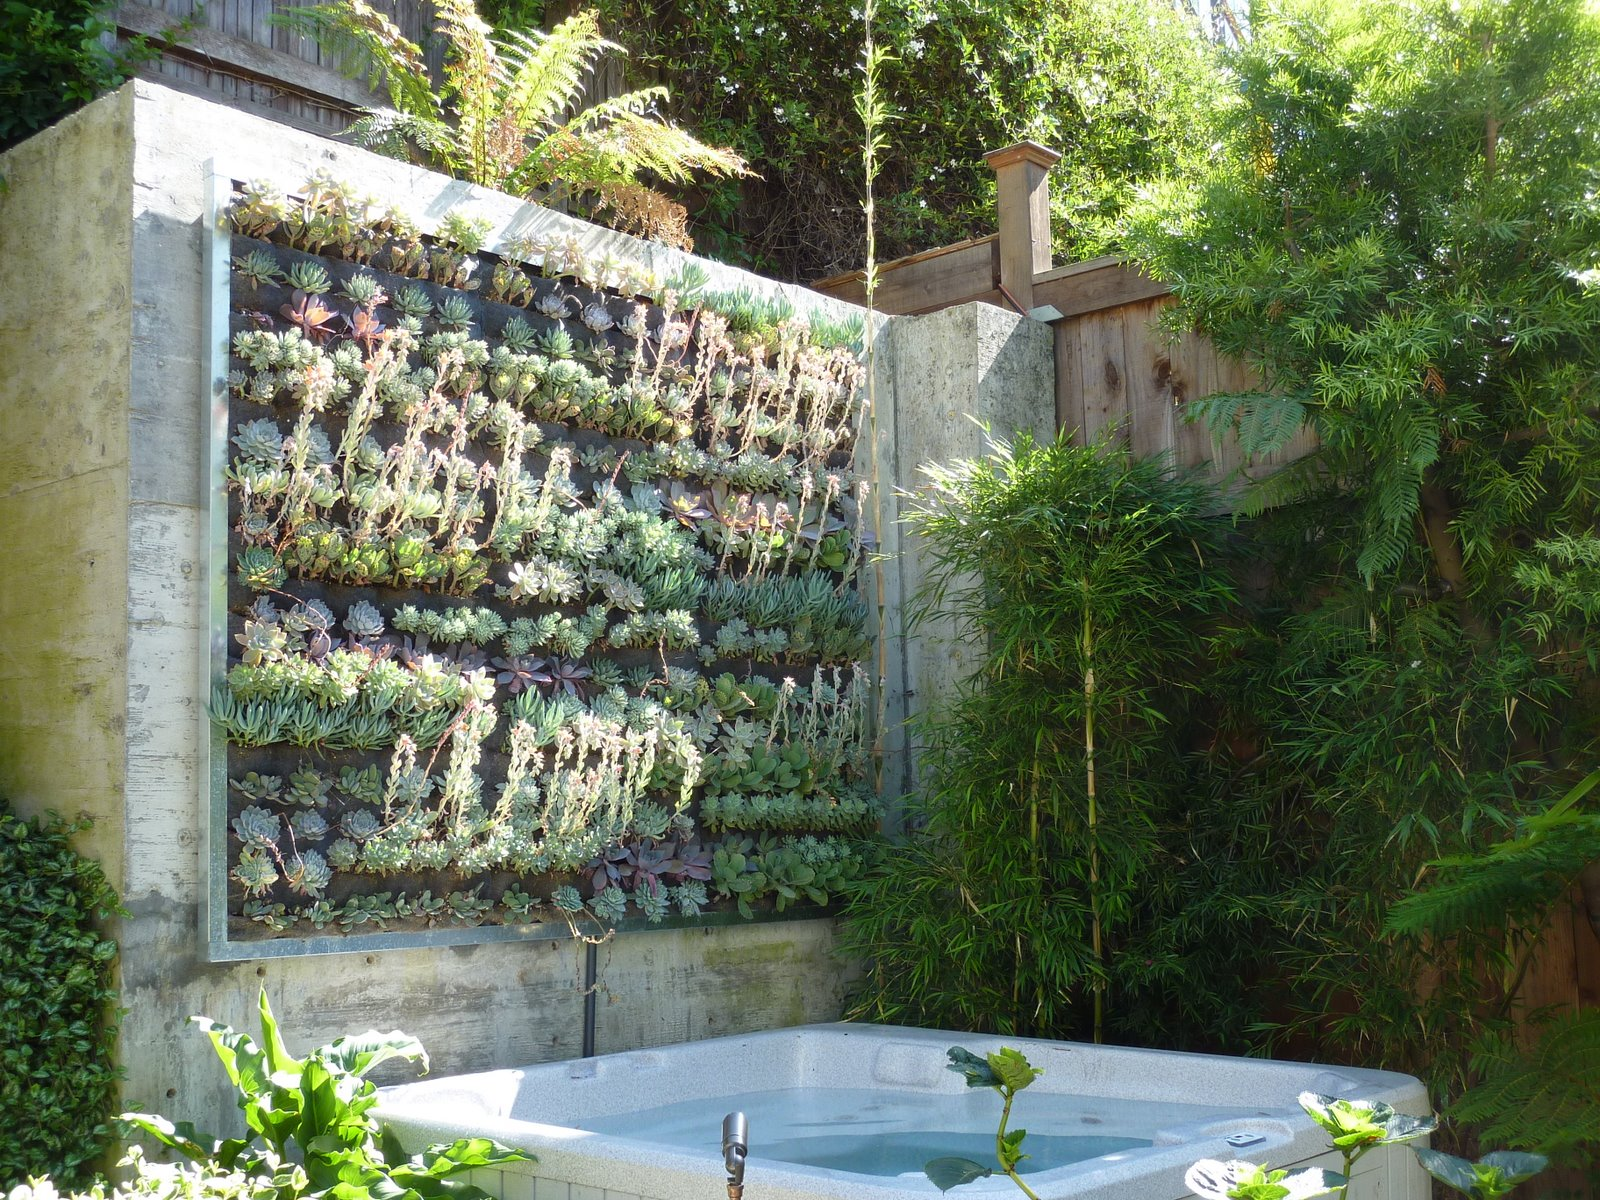 Plants on walls vertical garden systems september 2010 for Vertical garden wall systems